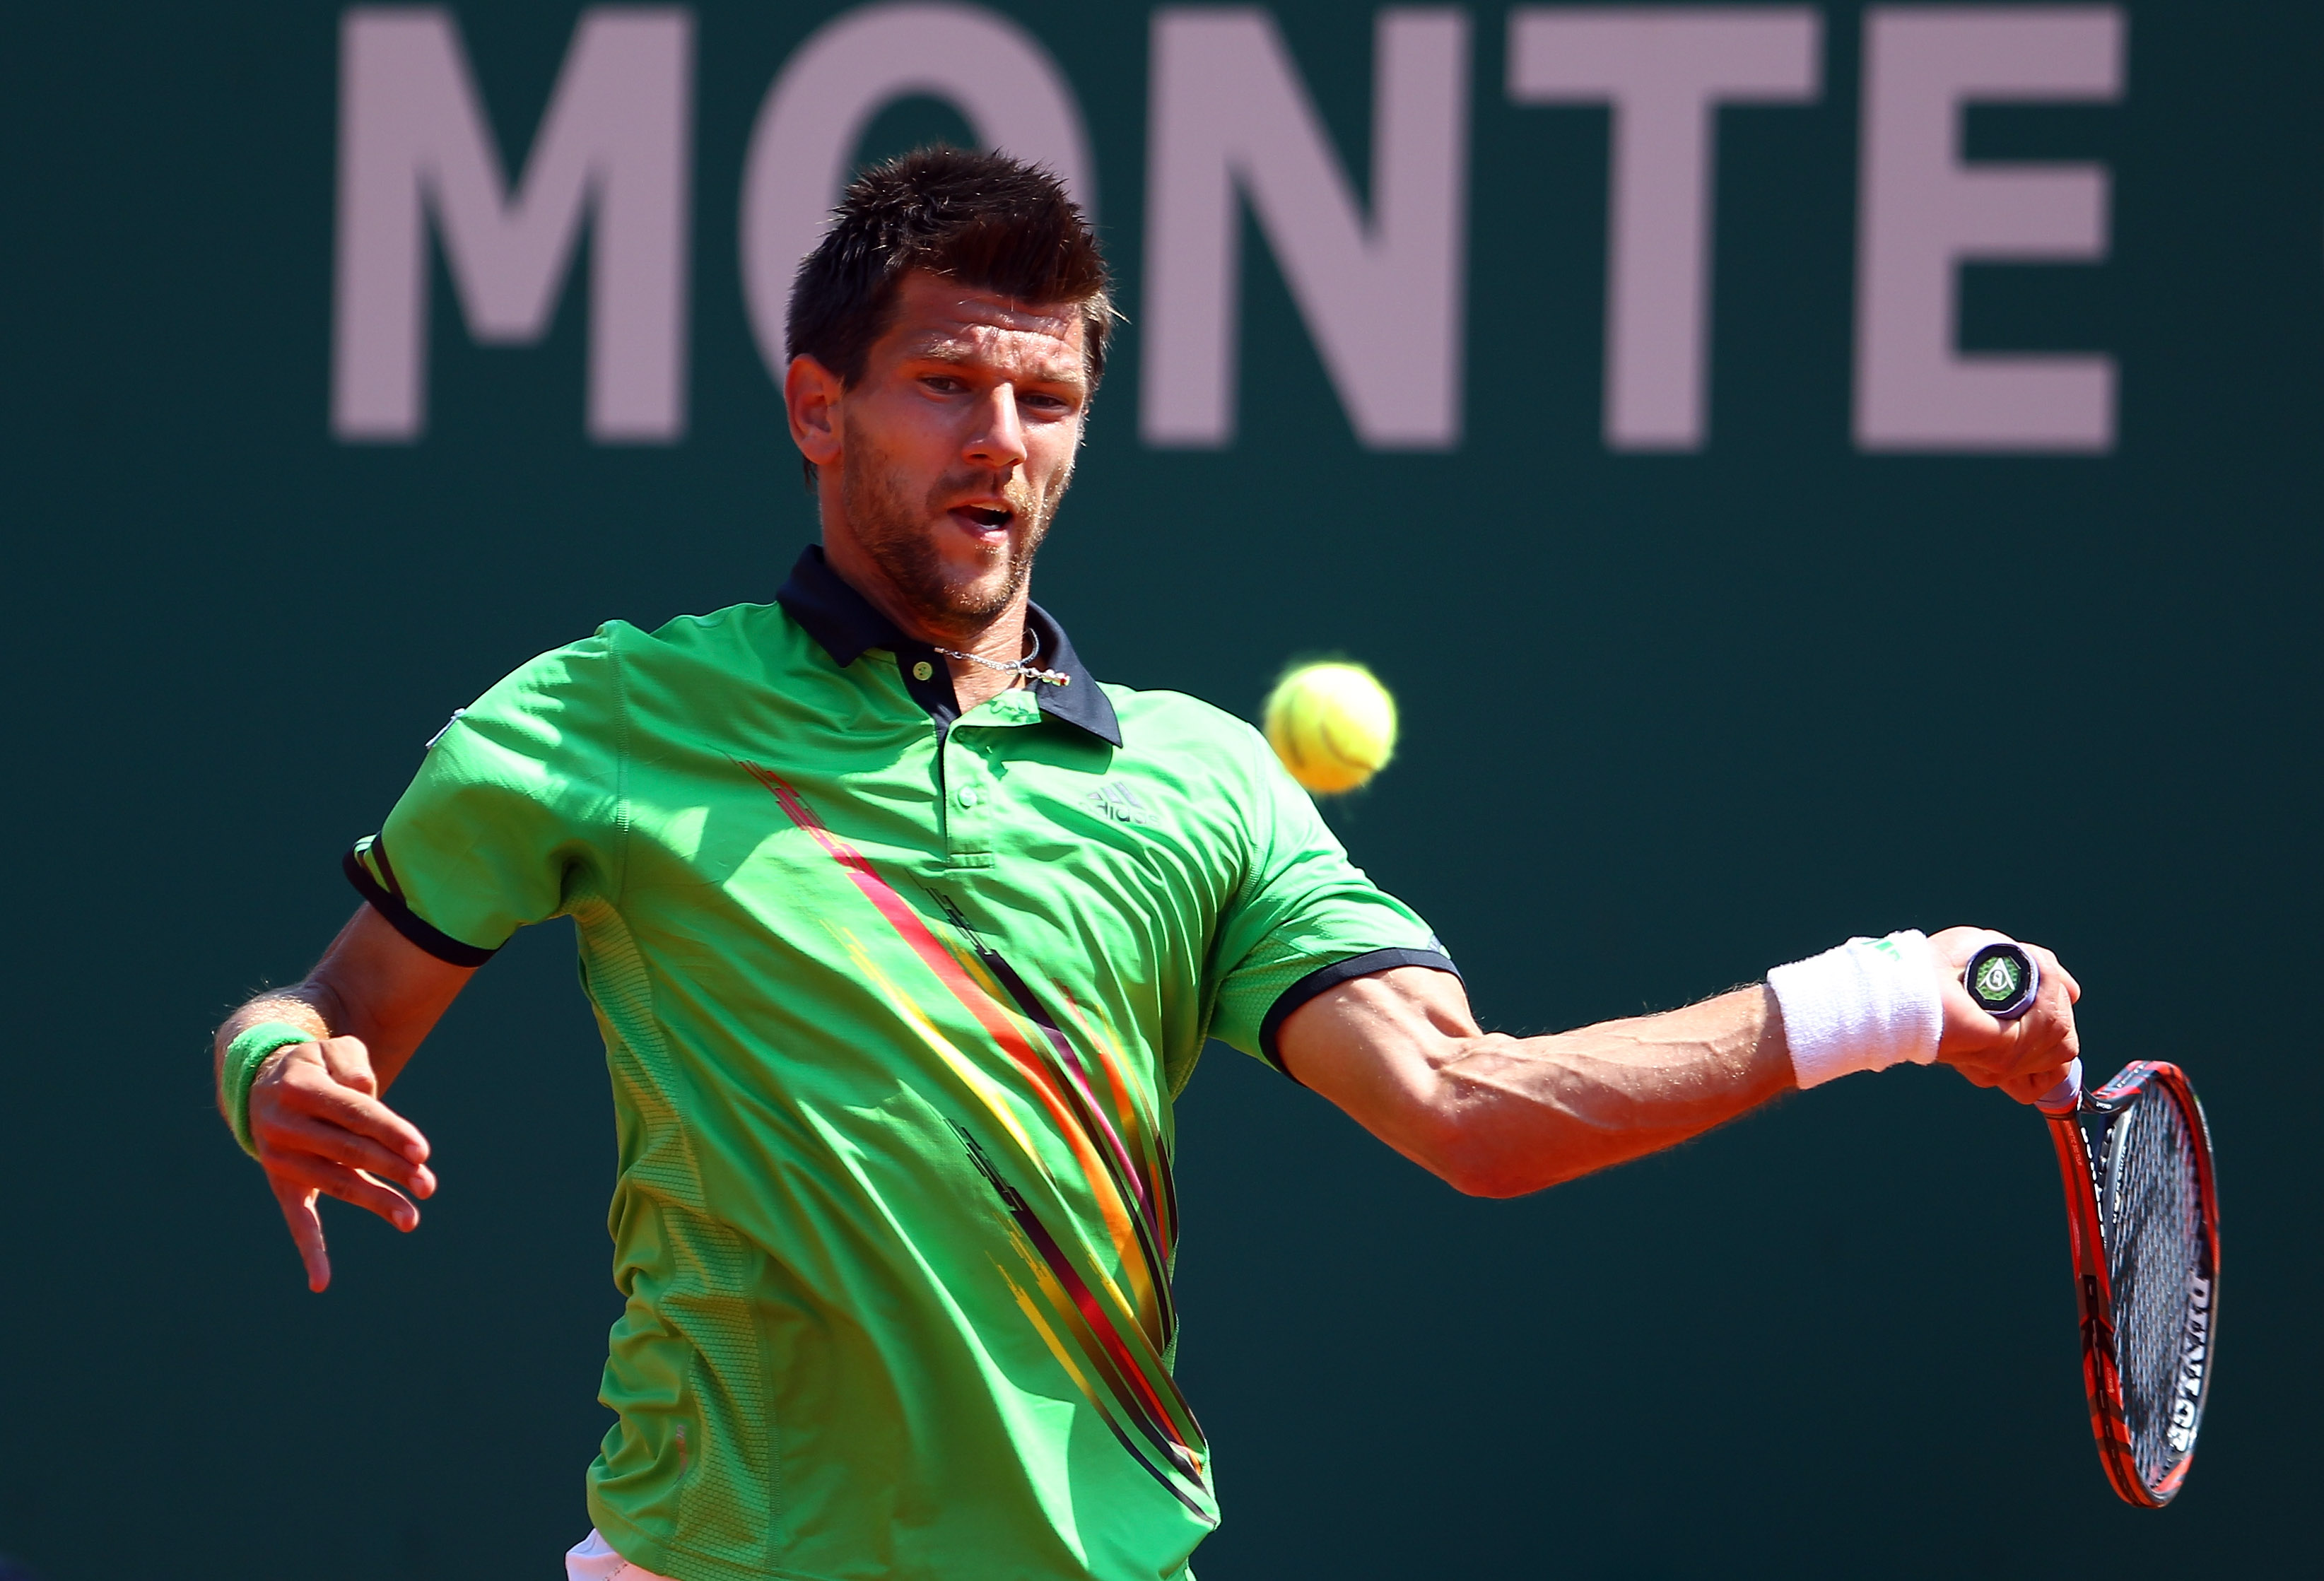 MONACO - APRIL 16:   Jurgen Melzer of Austria plays a forehand in his match against David Ferrer of Spain during Day Seven of the ATP Masters Series Tennis at the Monte Carlo Country Club on April 16, 2011 in Monte Carlo, Monaco.  (Photo by Julian Finney/